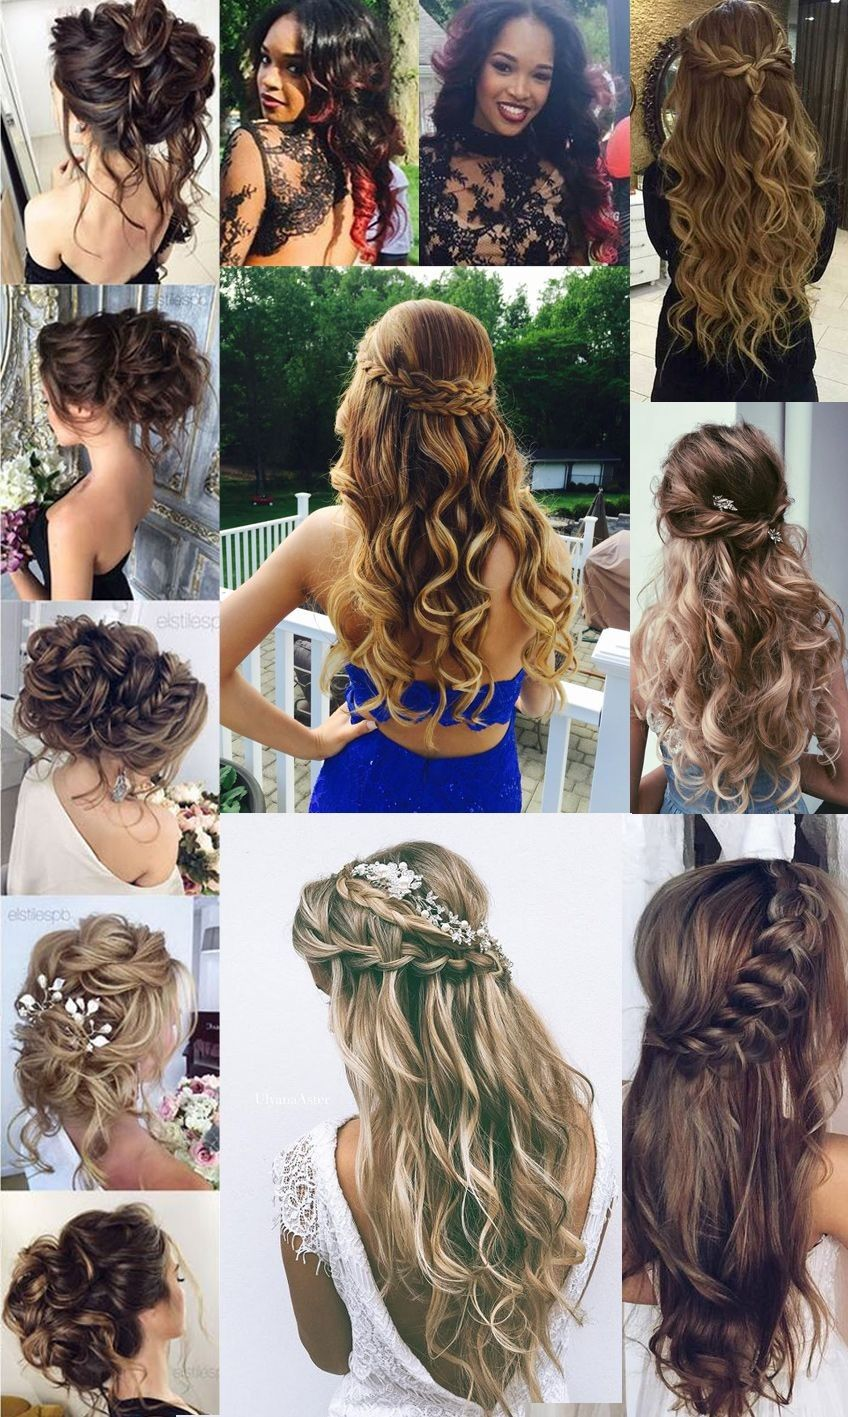 Two Piece High Neck Open Back Black Long Mermaid Prom Dress With Lace Party Hairstyles For Long Hair Hairstyles For Long Dresses Long Hair Styles